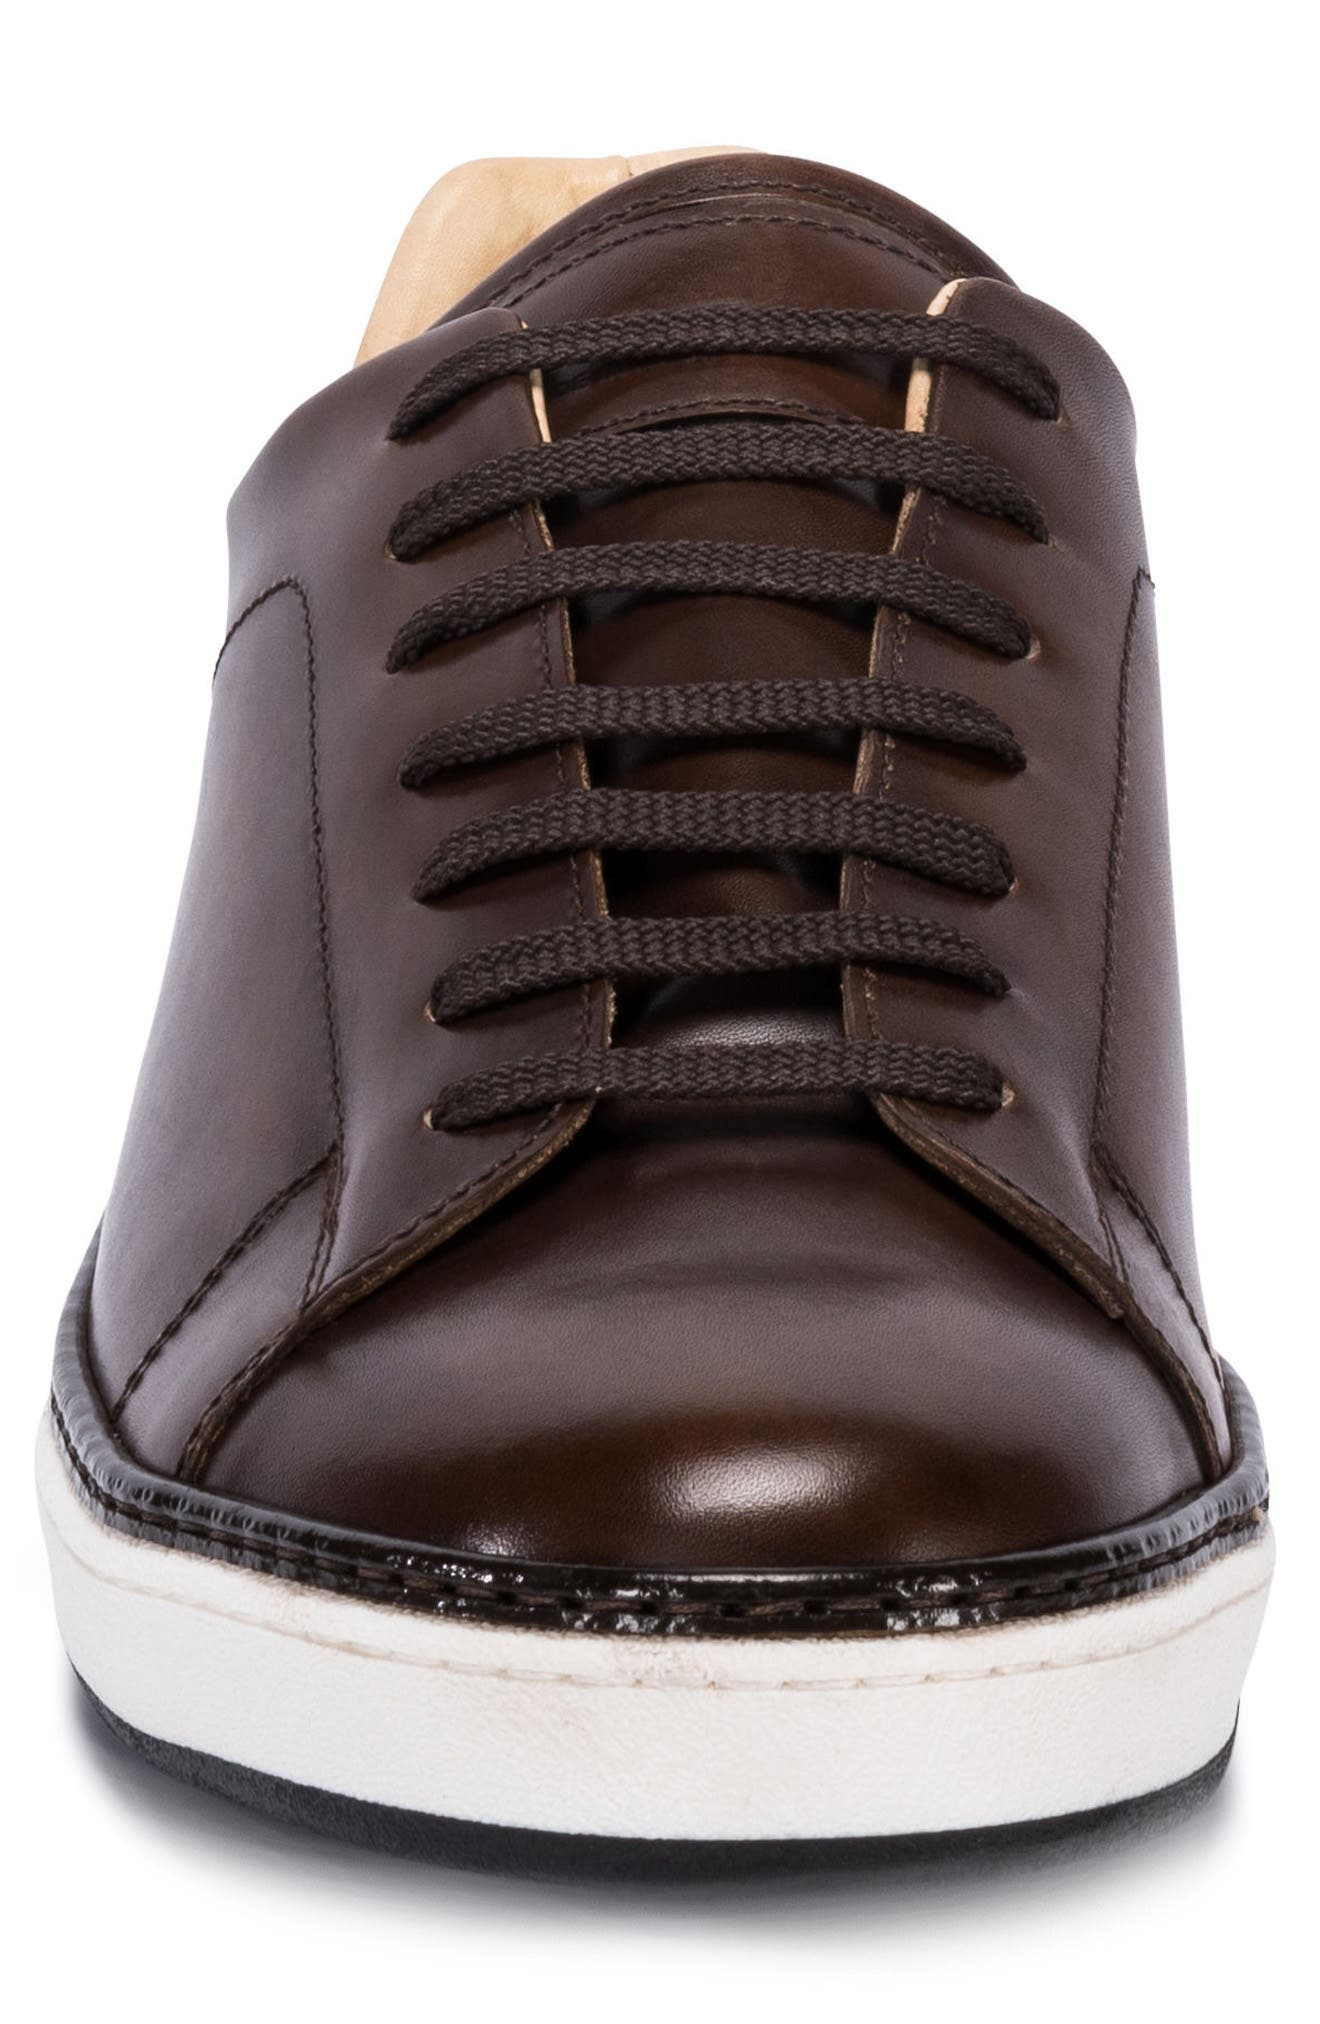 Firenze Low Top Sneaker,                             Alternate thumbnail 4, color,                             BURGUNDY LEATHER